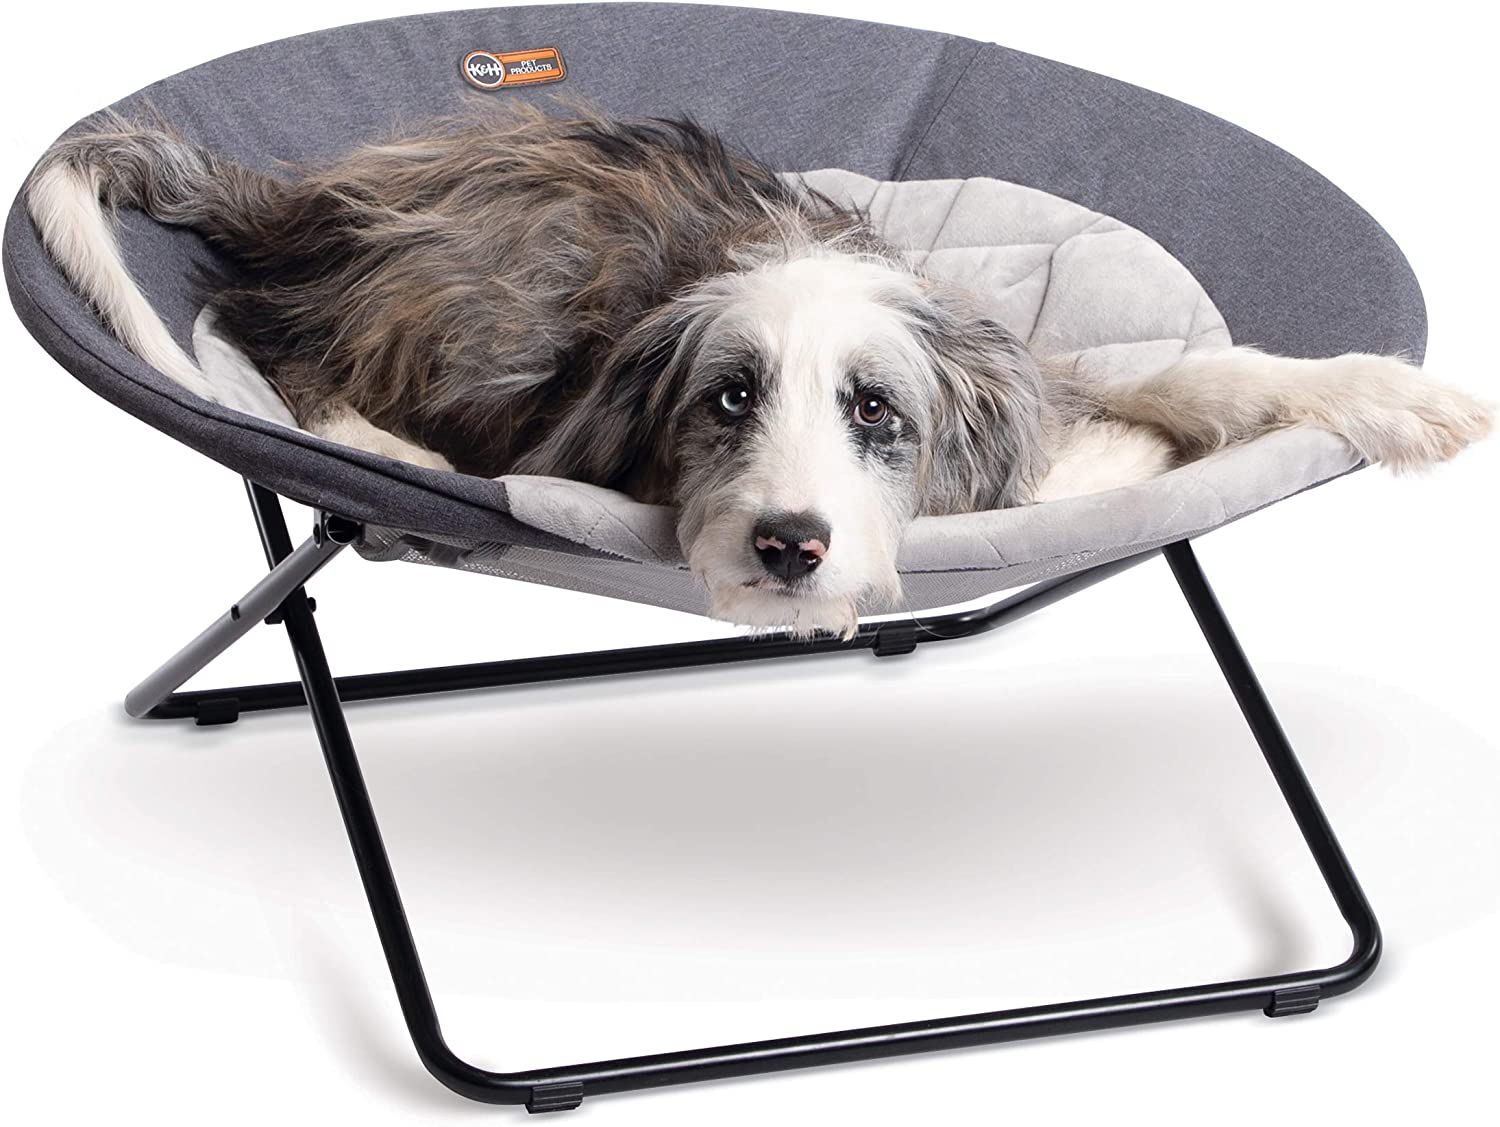 K&H PET PRODUCTS Cozy Cot Elevated Pet Bed, Dish Chair for Dogs and Cats, Machine Washable, Multiple Sizes and Colors